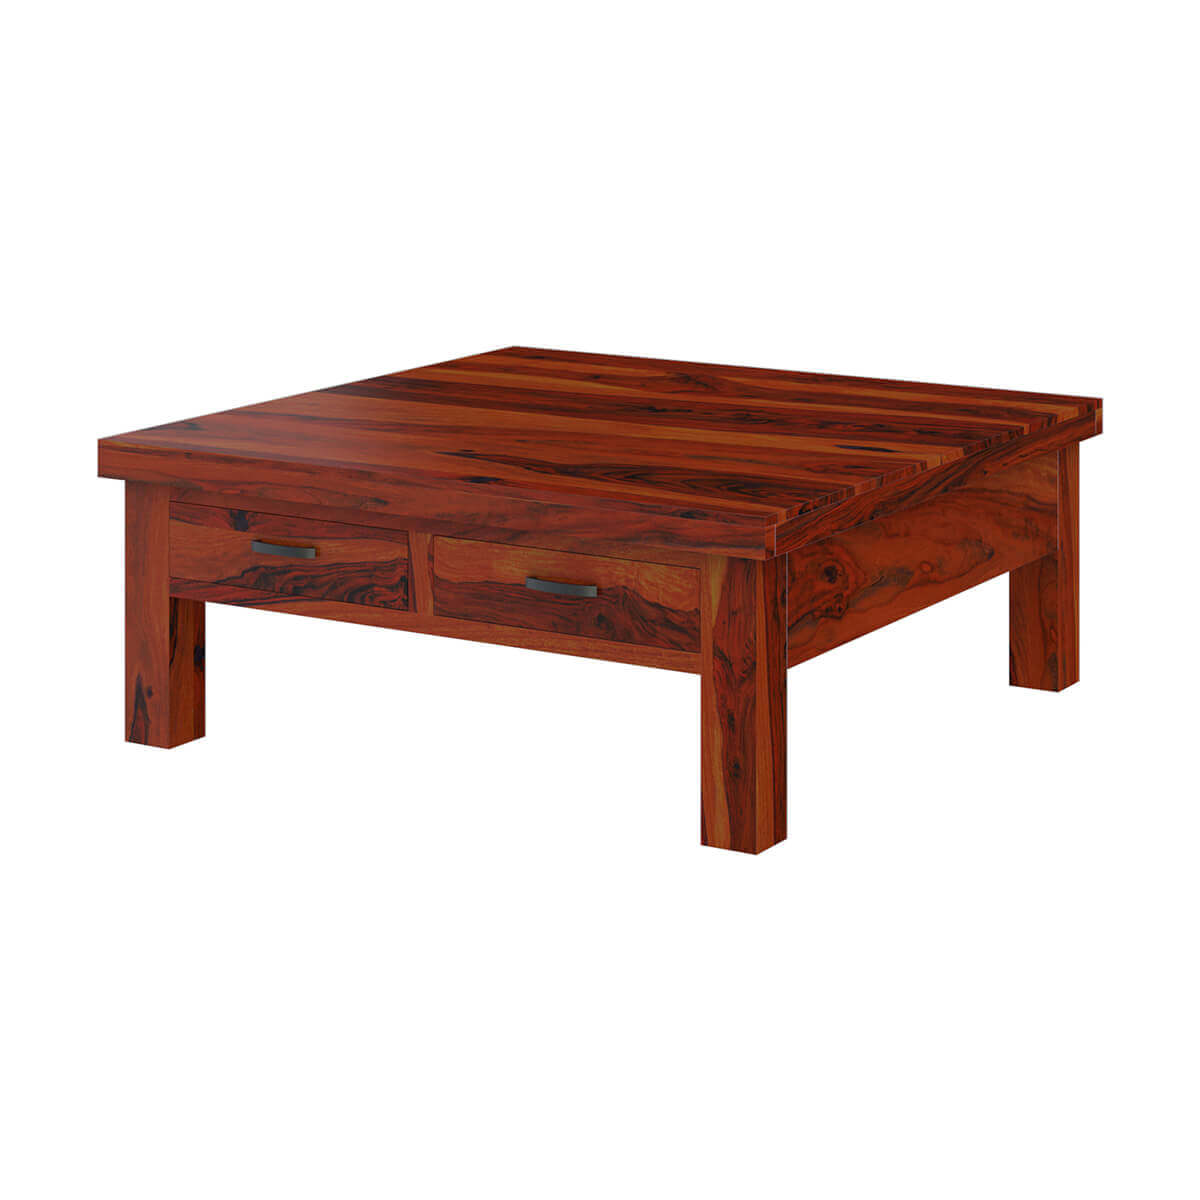 Coffee Table With Drawers: Cheverly Modern Style Solid Wood 4 Drawers Square Coffee Table